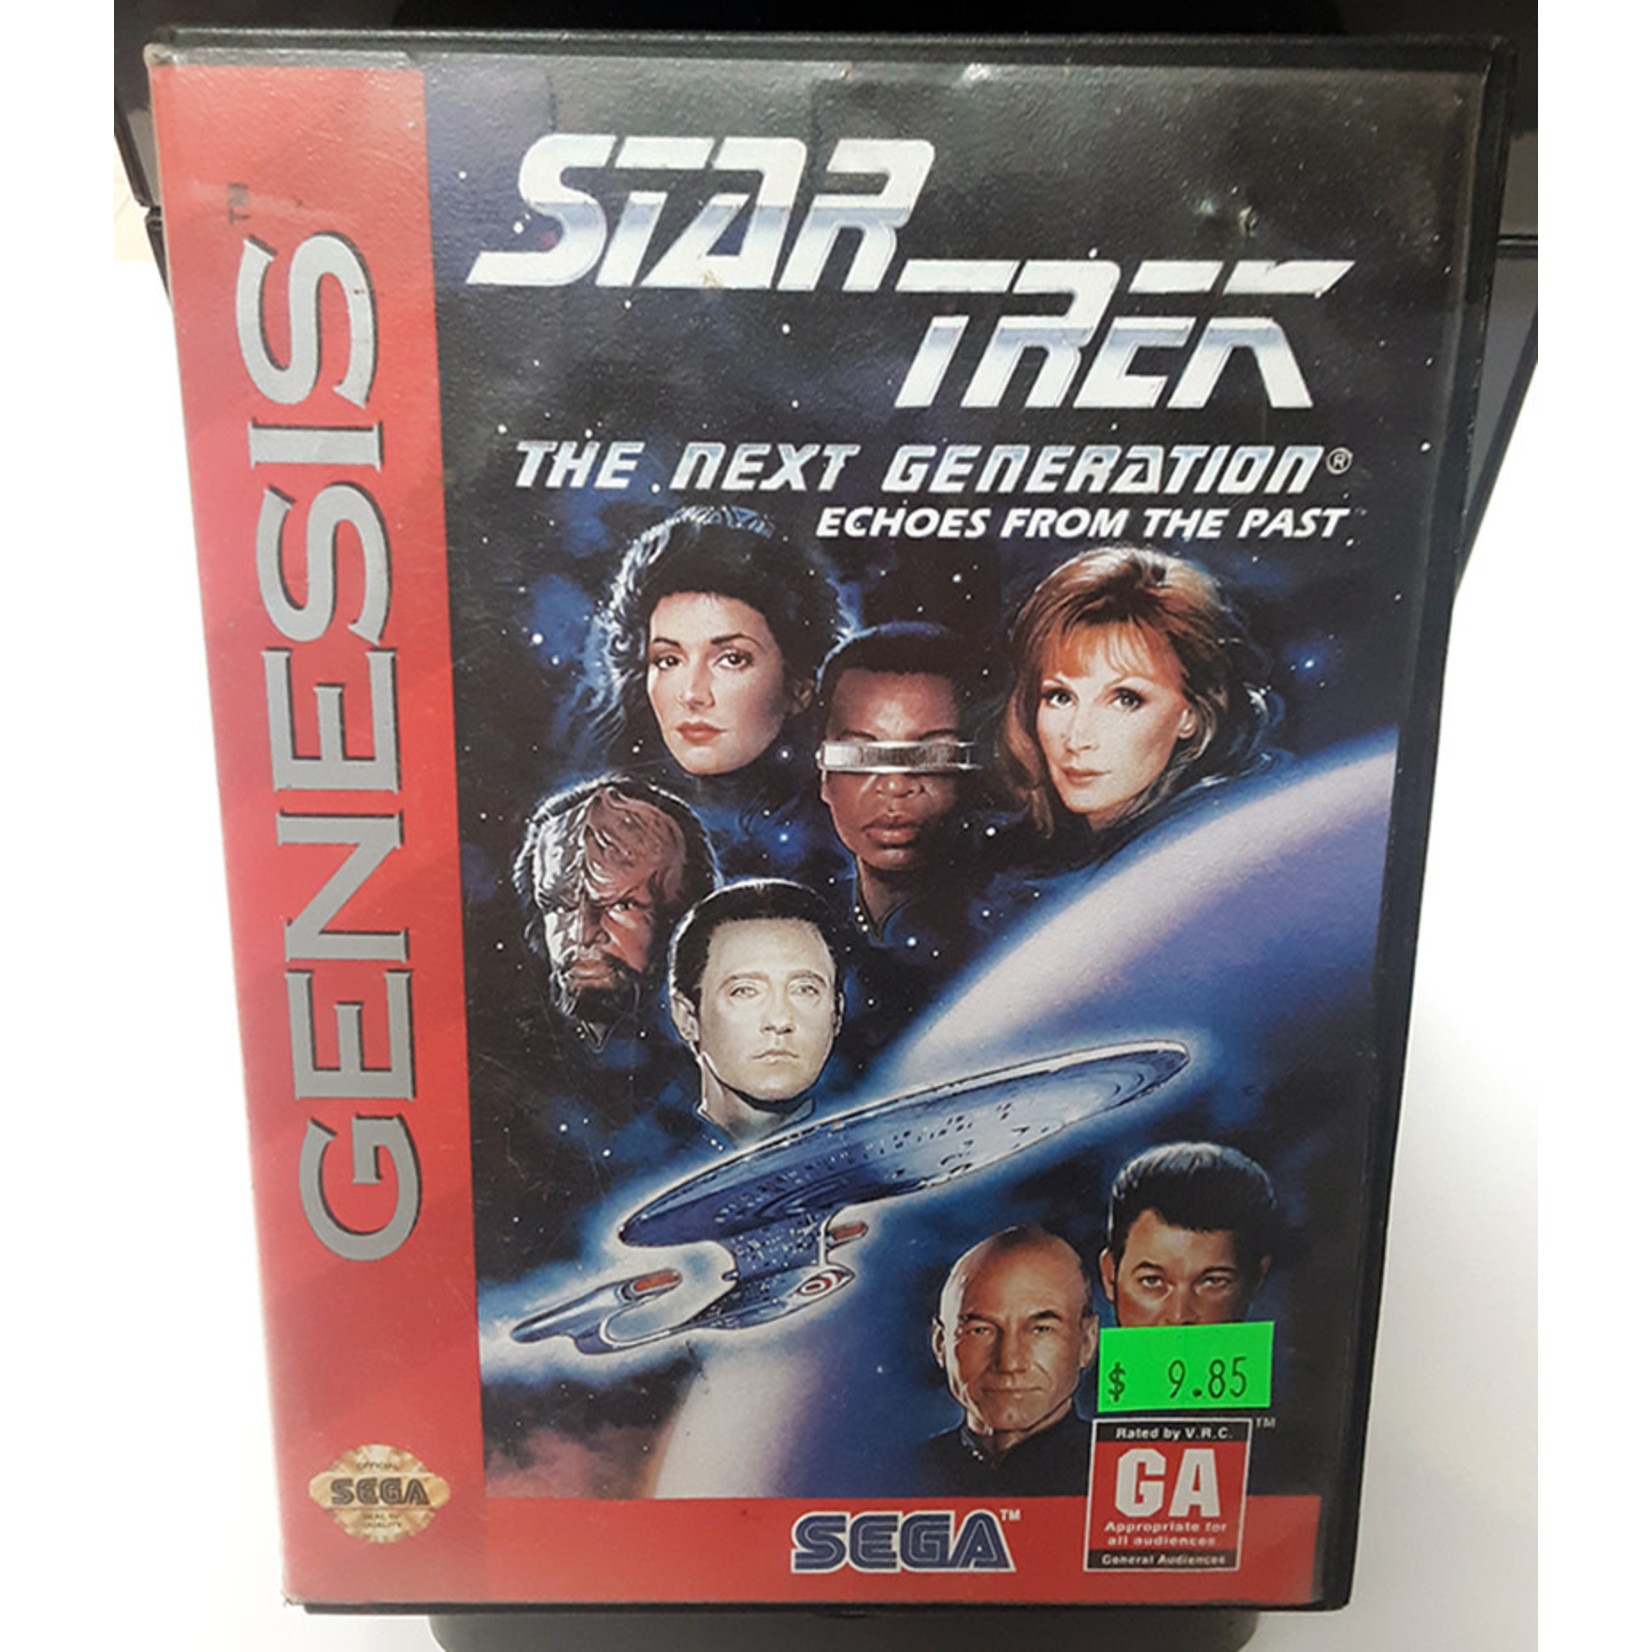 SGU-Star Trek Next Generation Echoes From the Past (boxed)